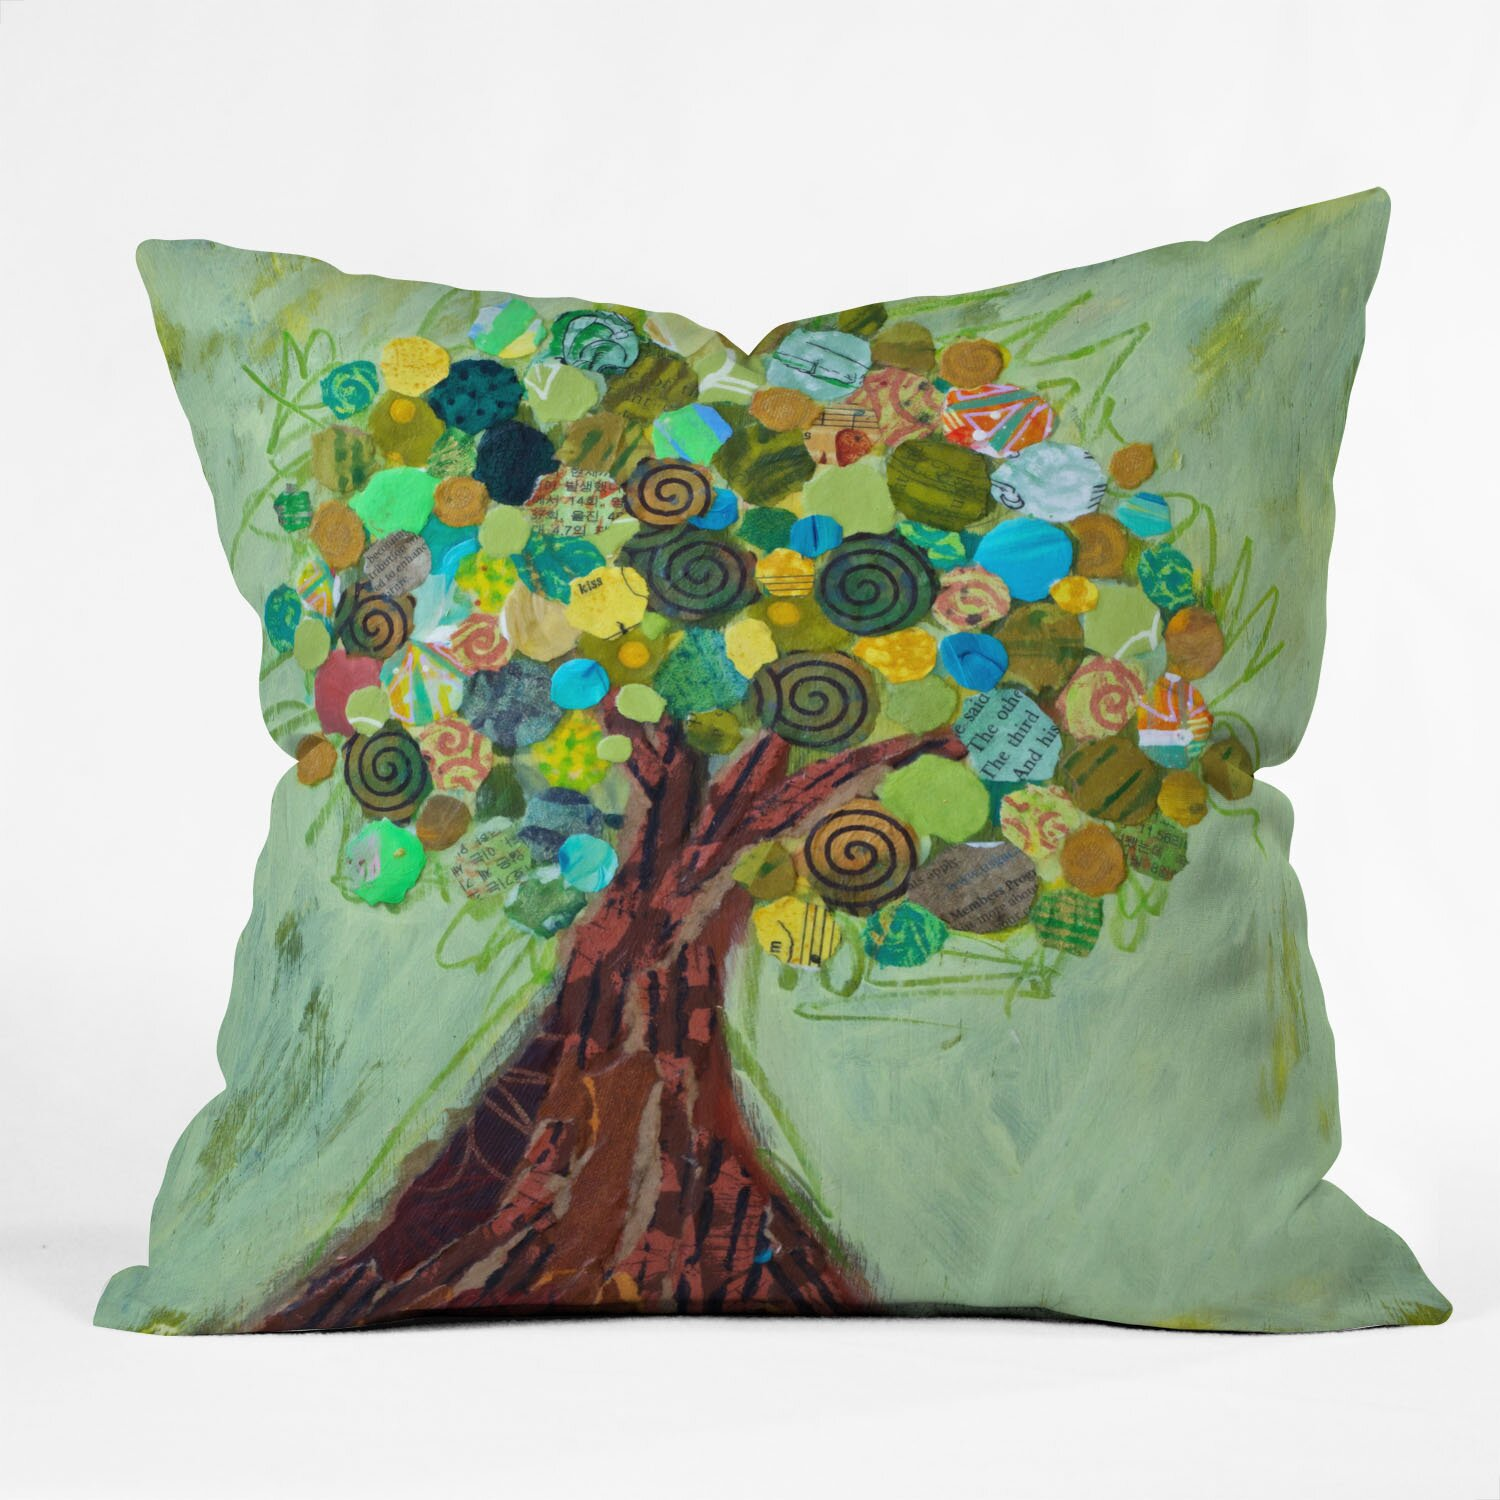 Designs Of Throw Pillow : DENY Designs Elizabeth St Hilaire Nelson Spring Tree Throw Pillow & Reviews Wayfair